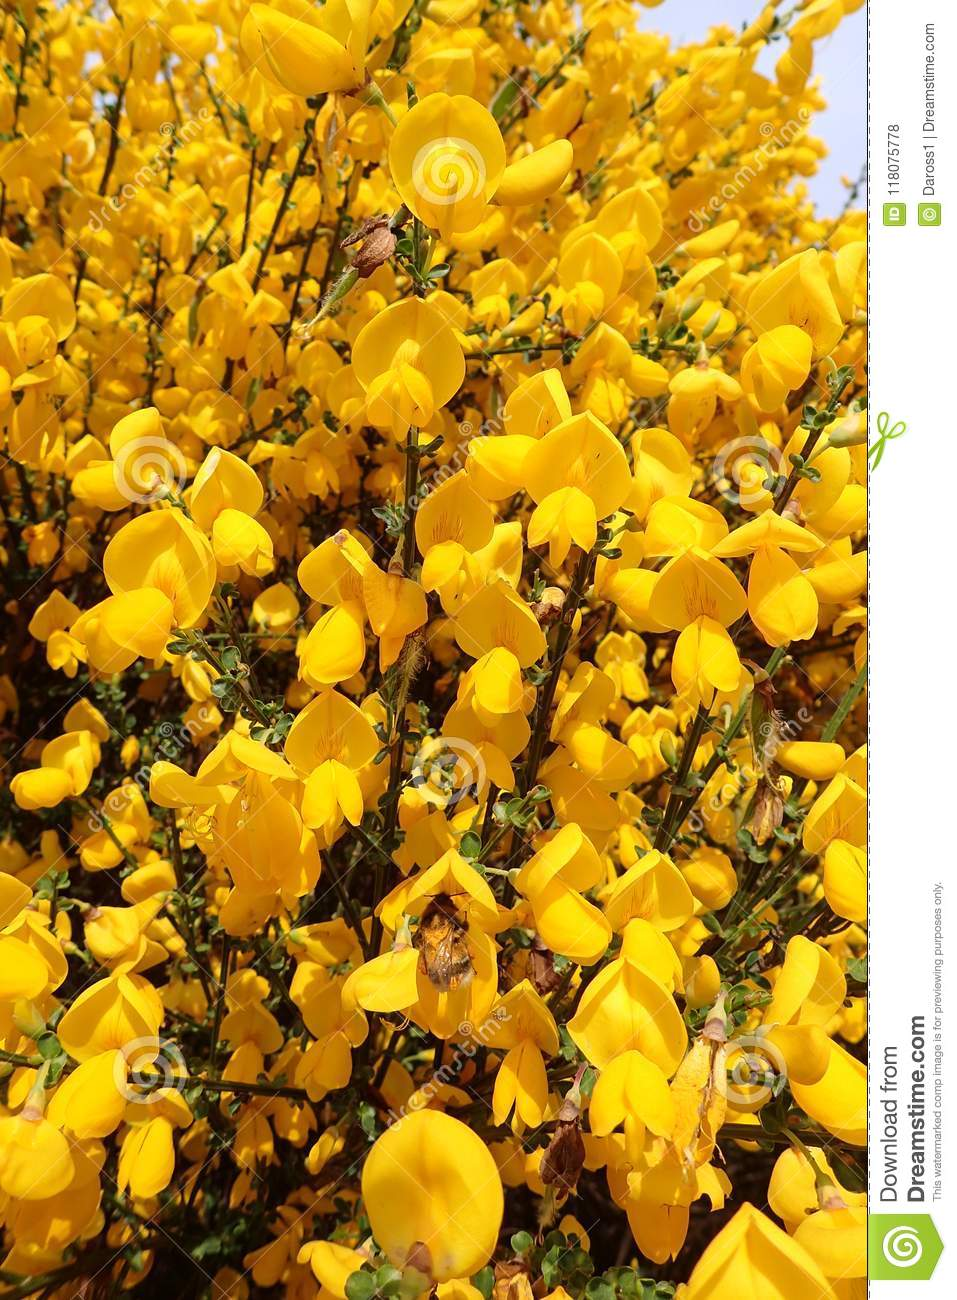 Macro Shot Of Wild Scotch Broom Plant In Full Bloom On A Sunny Day